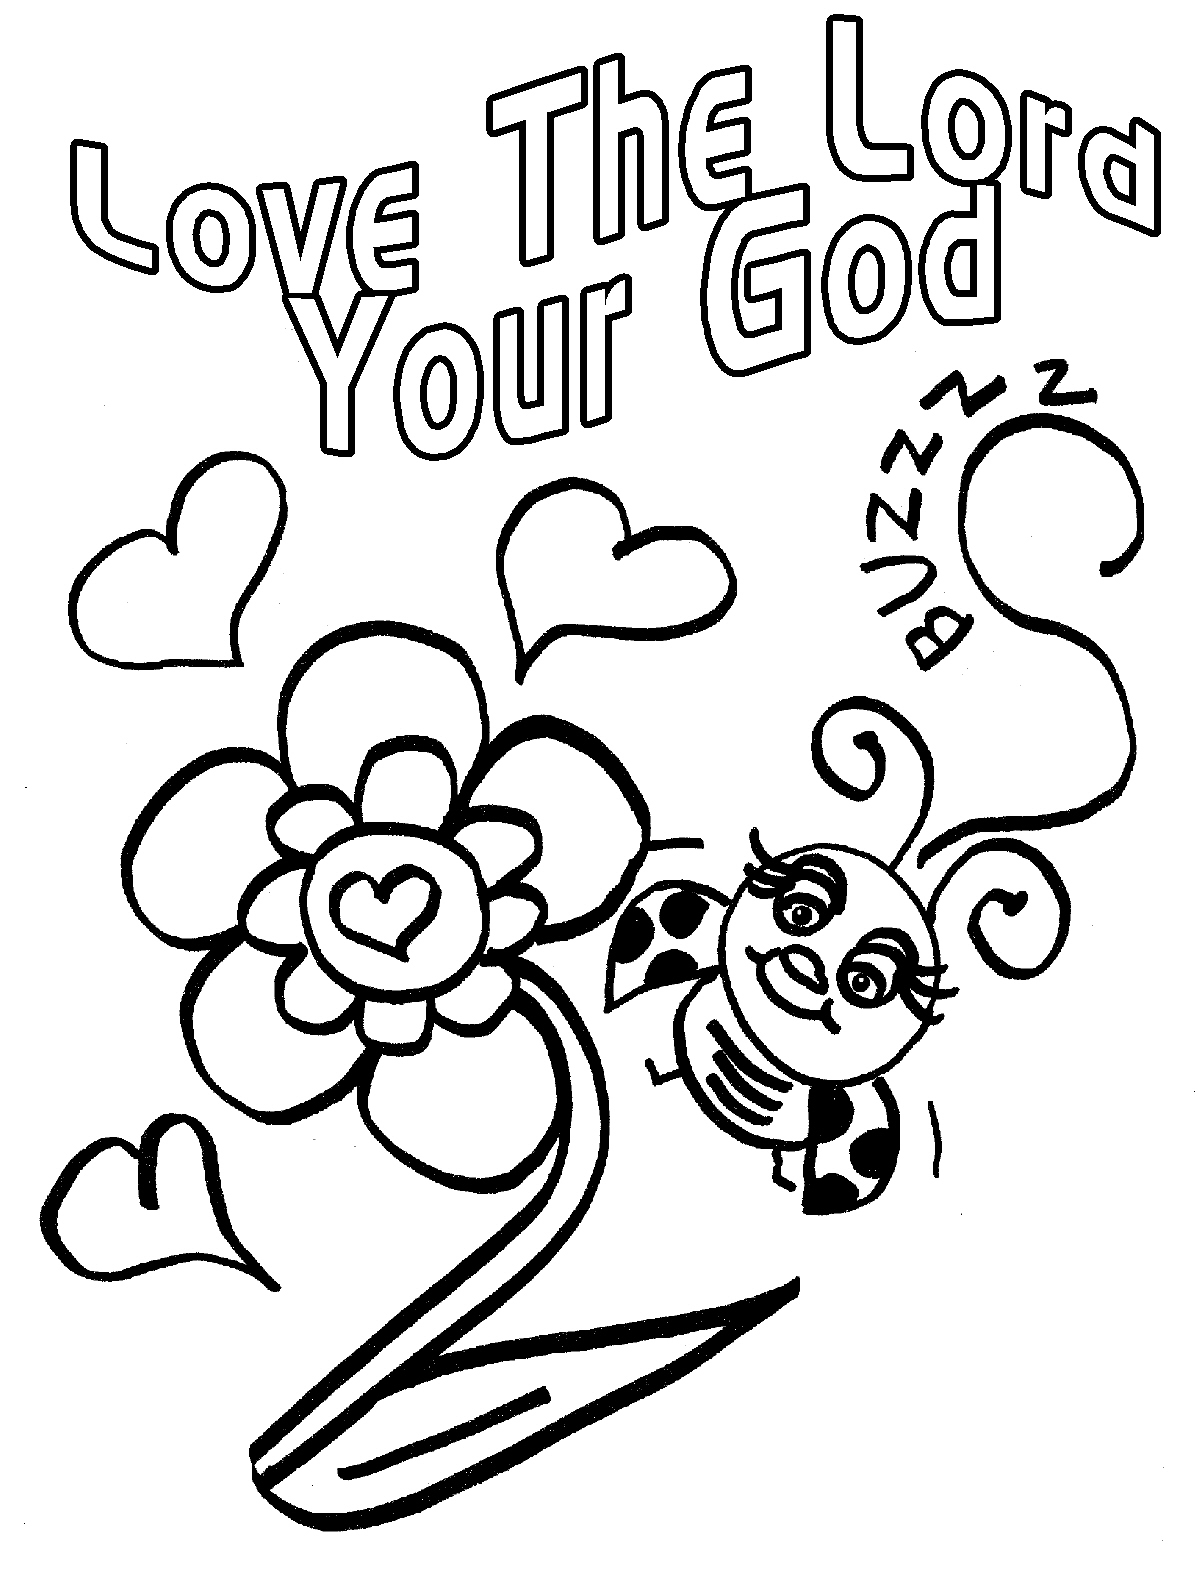 jesus loves you coloring pages - photo#34